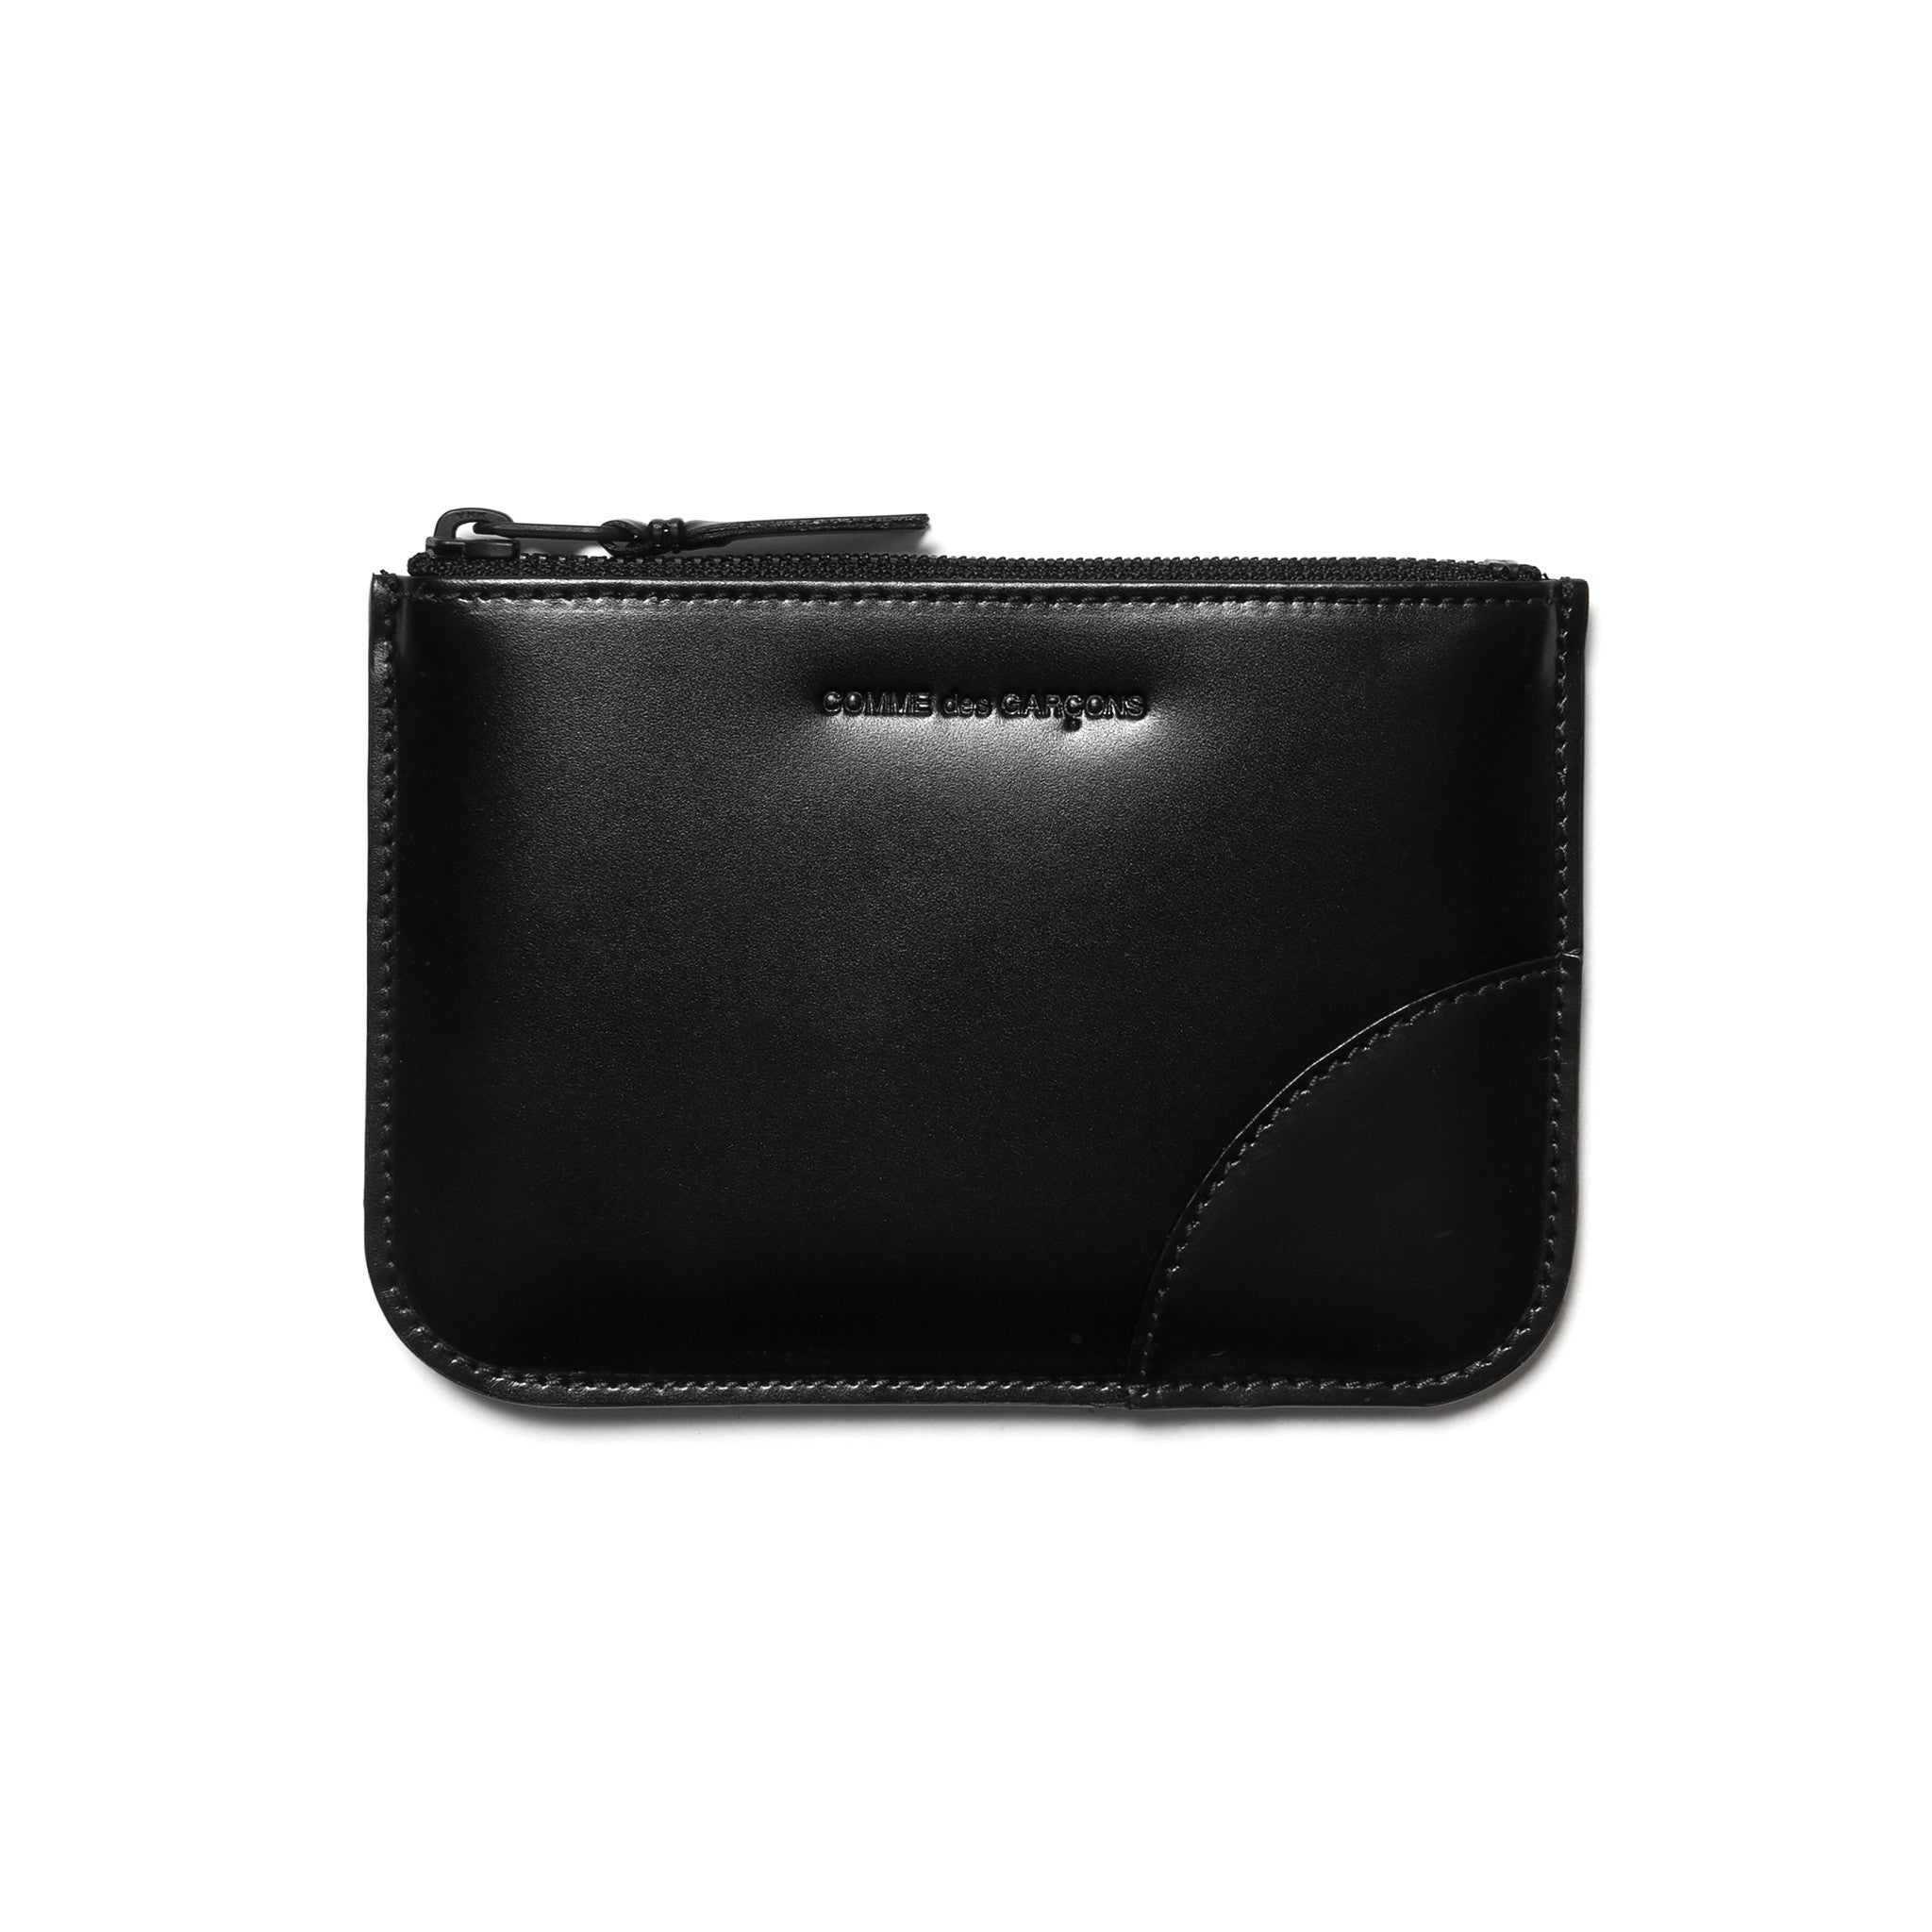 Small Leather Goods - Wallets Comme Des Gar?ons UOqCjE98Ij